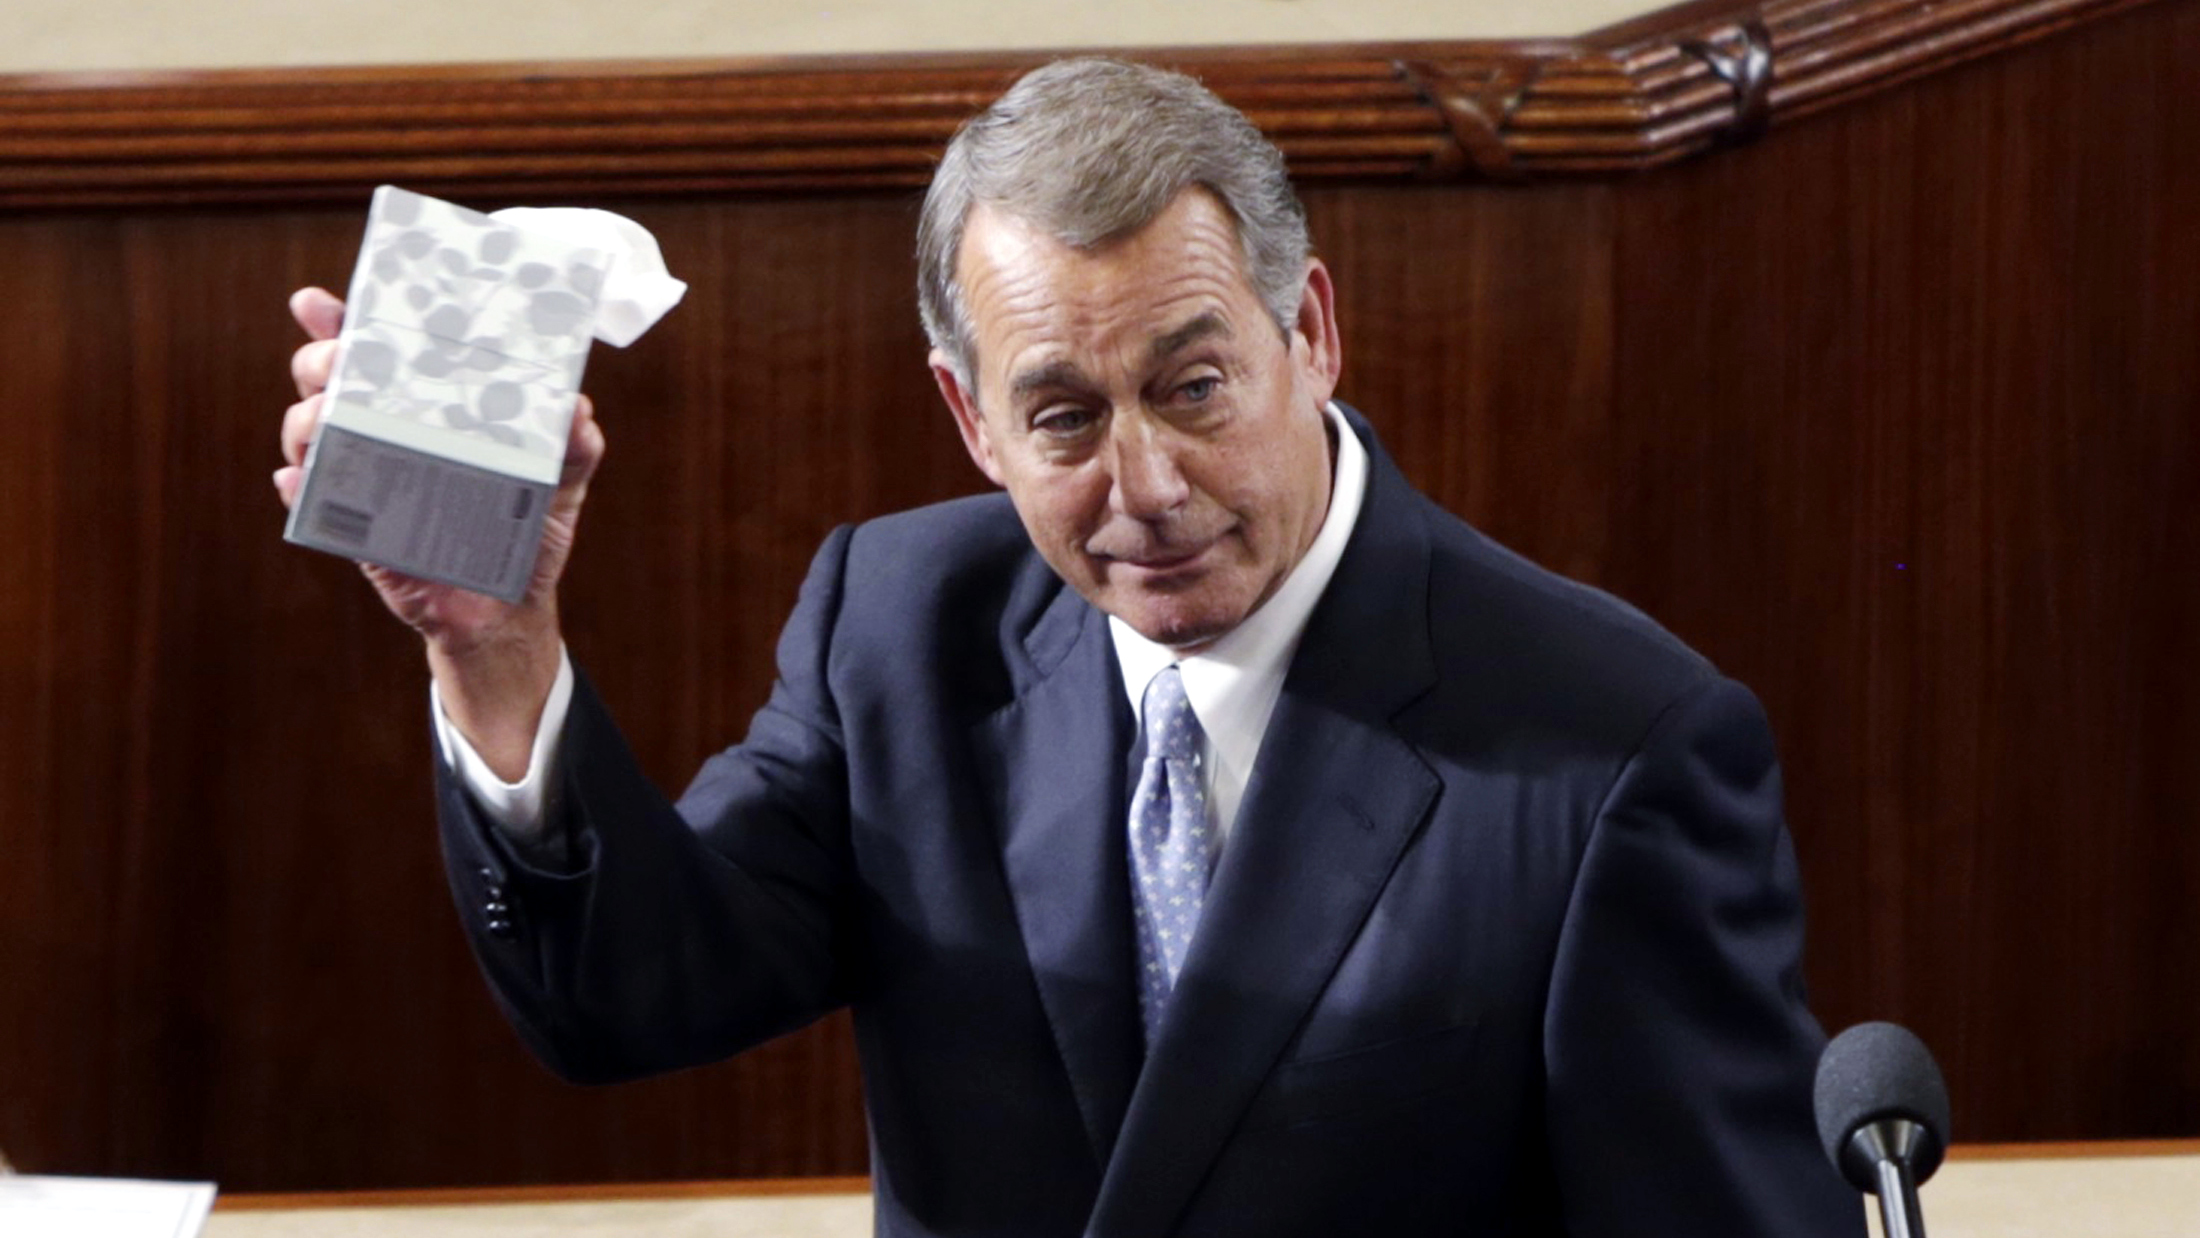 Outgoing House Speaker John Boehner (R-OH) waves his trademark box of tissues as he addresses colleagues prior to the election for the new Speaker of the U.S. House of Representatives on Capitol Hill in Washington October 29, 2015.